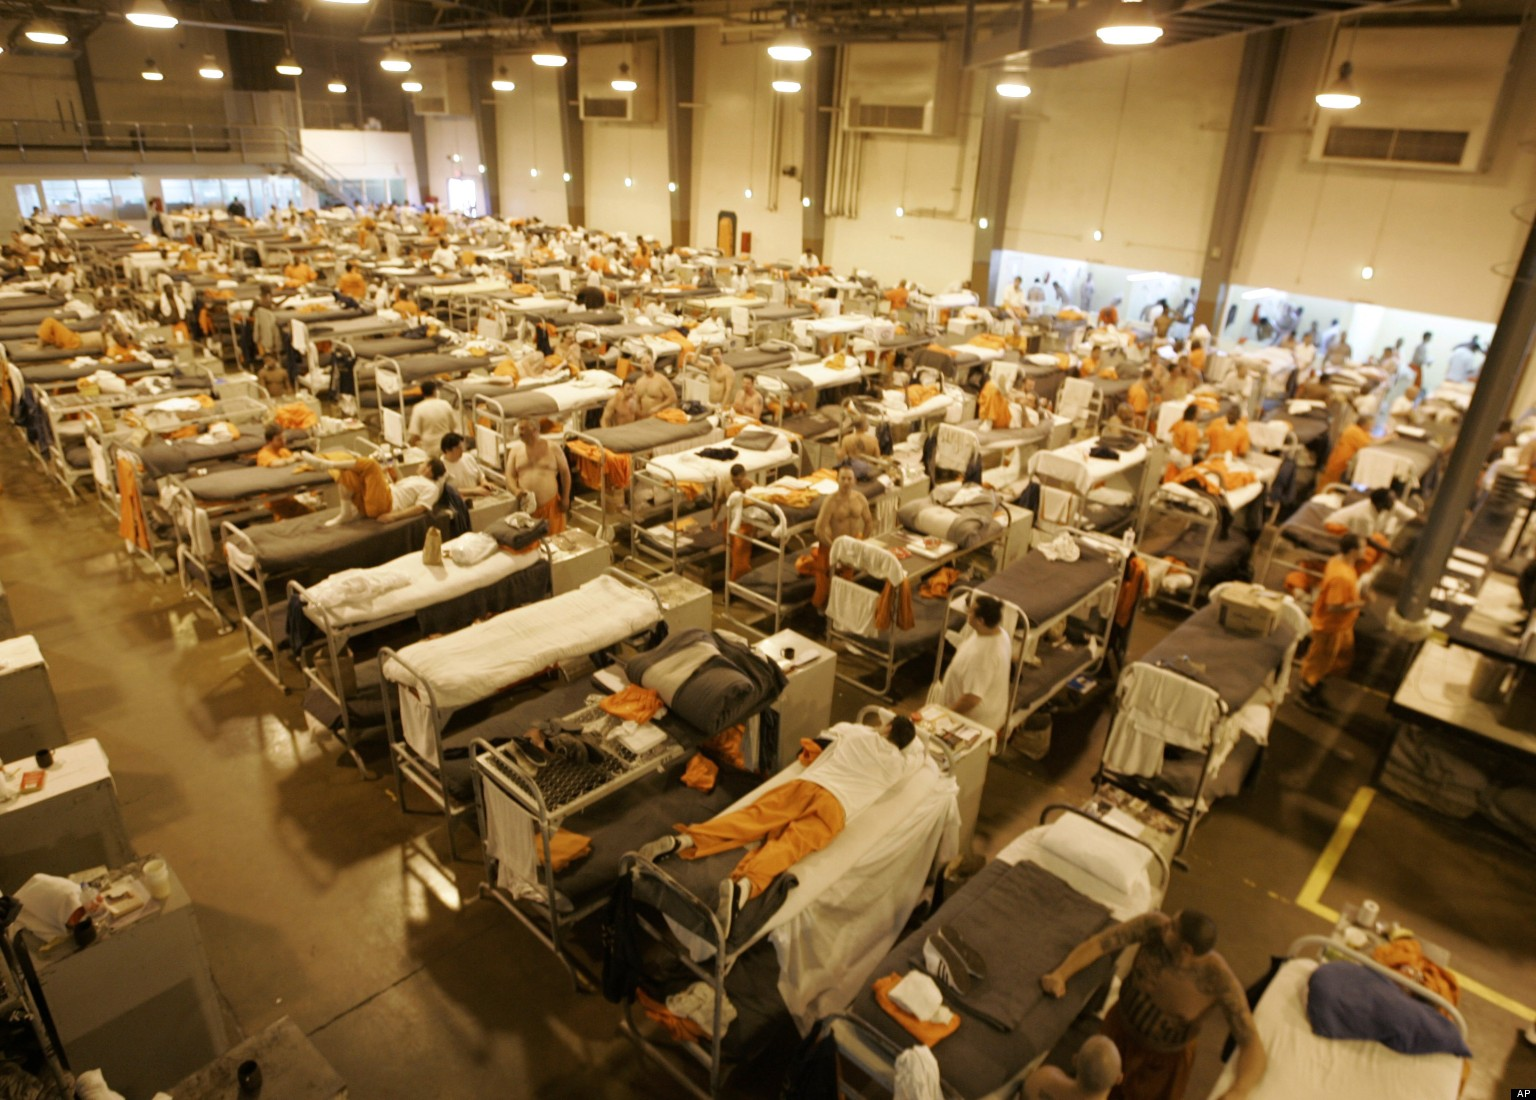 prison overcrowding in california 18 facts you need to know about us prisons severe prison overcrowding means that violent criminals about half of the inmates in federal prisons.